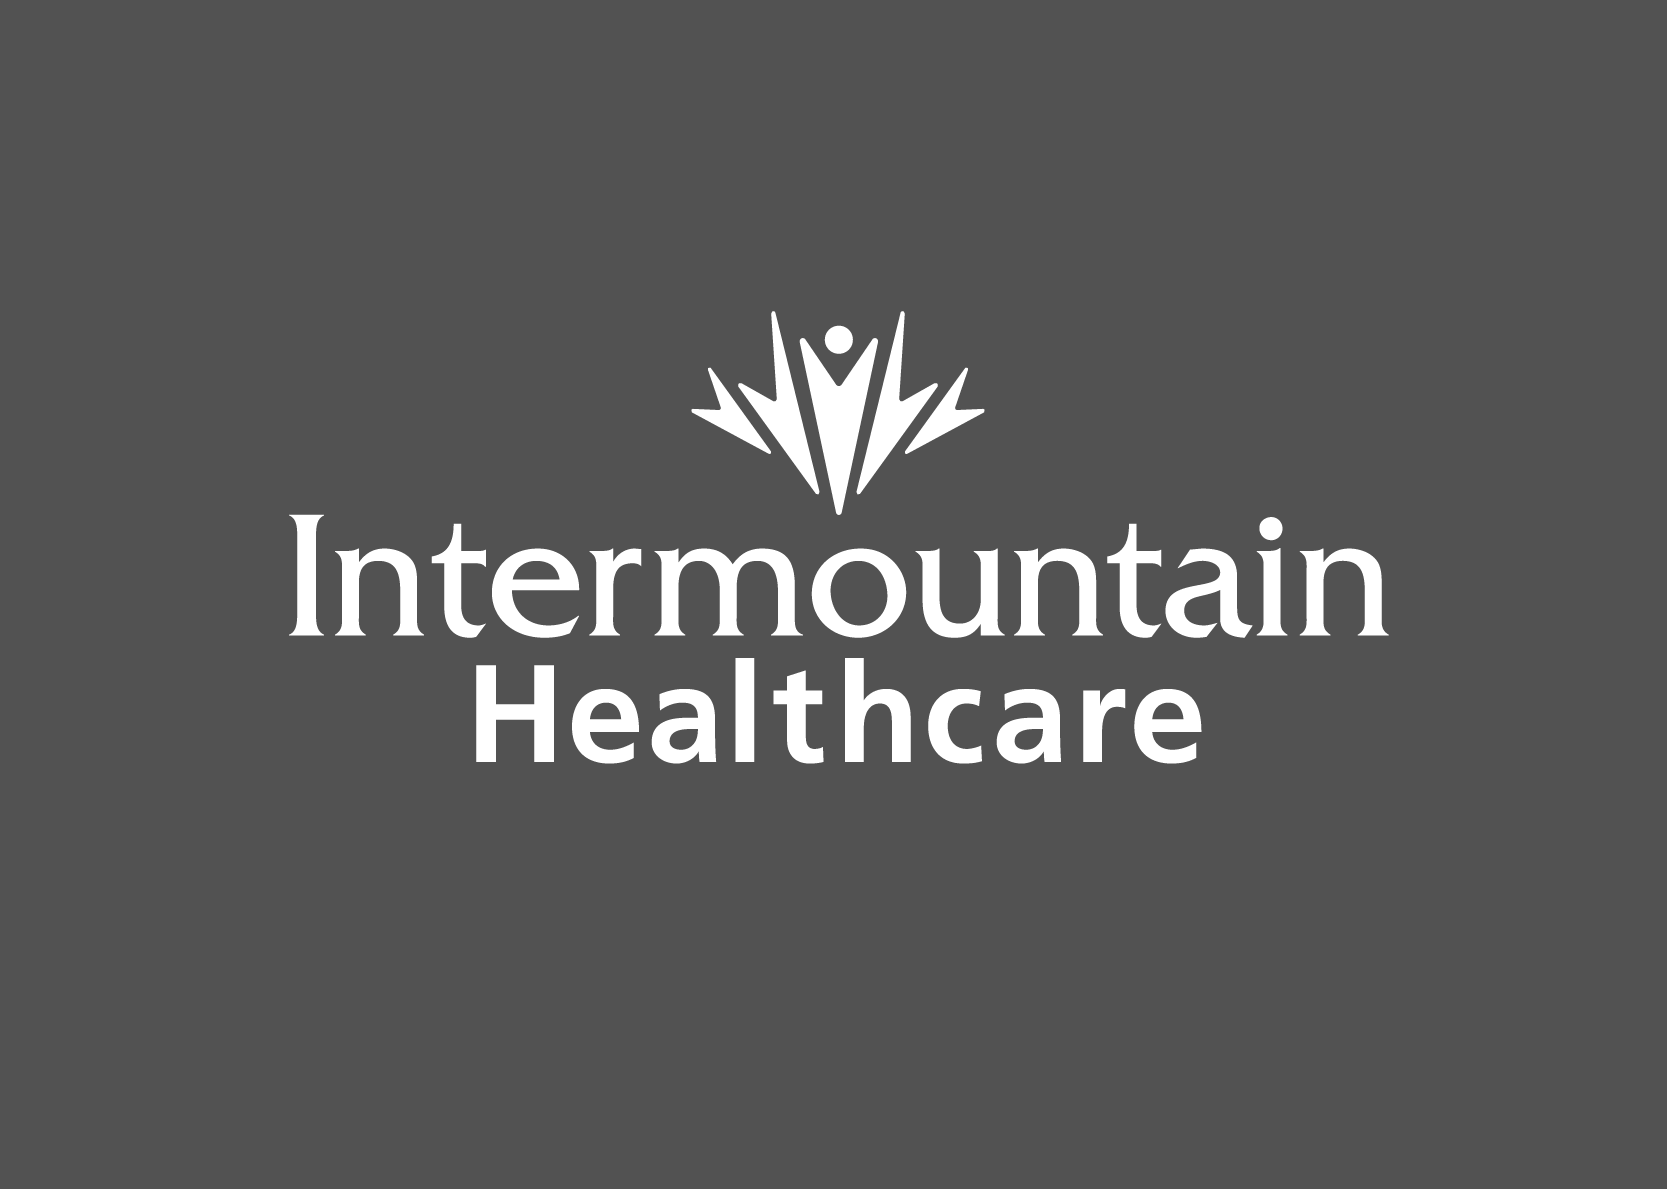 Intermountain Healthcare Graphic Design